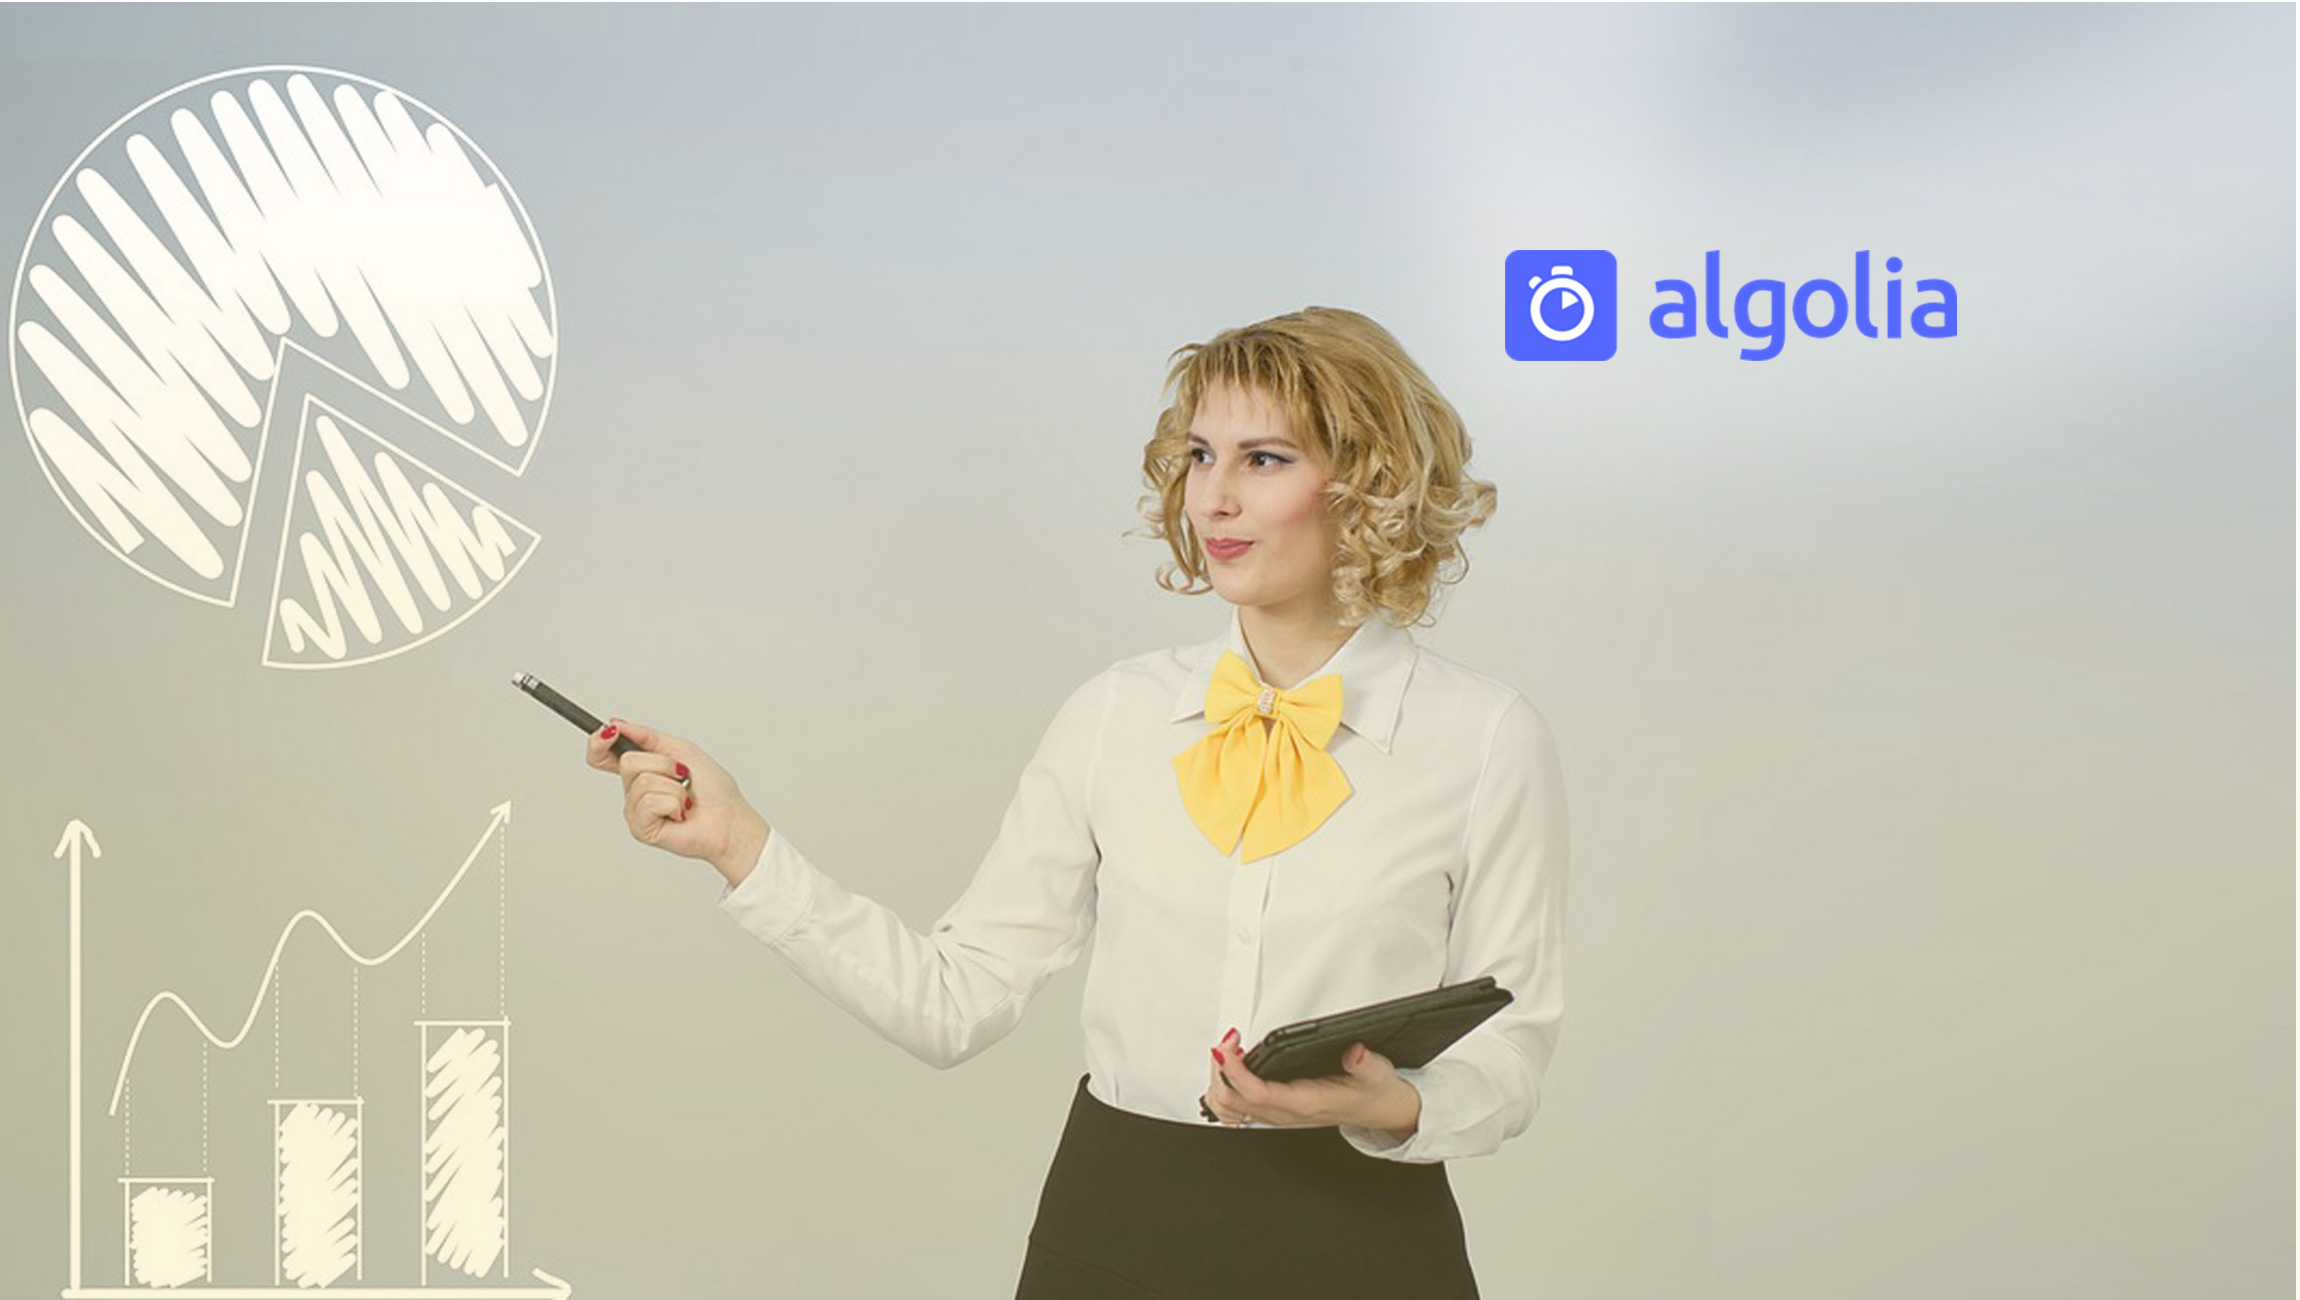 Algolia Appoints Jean-Louis Baffier as Chief Revenue Officer to Support Rapid Corporate Growth and Momentum